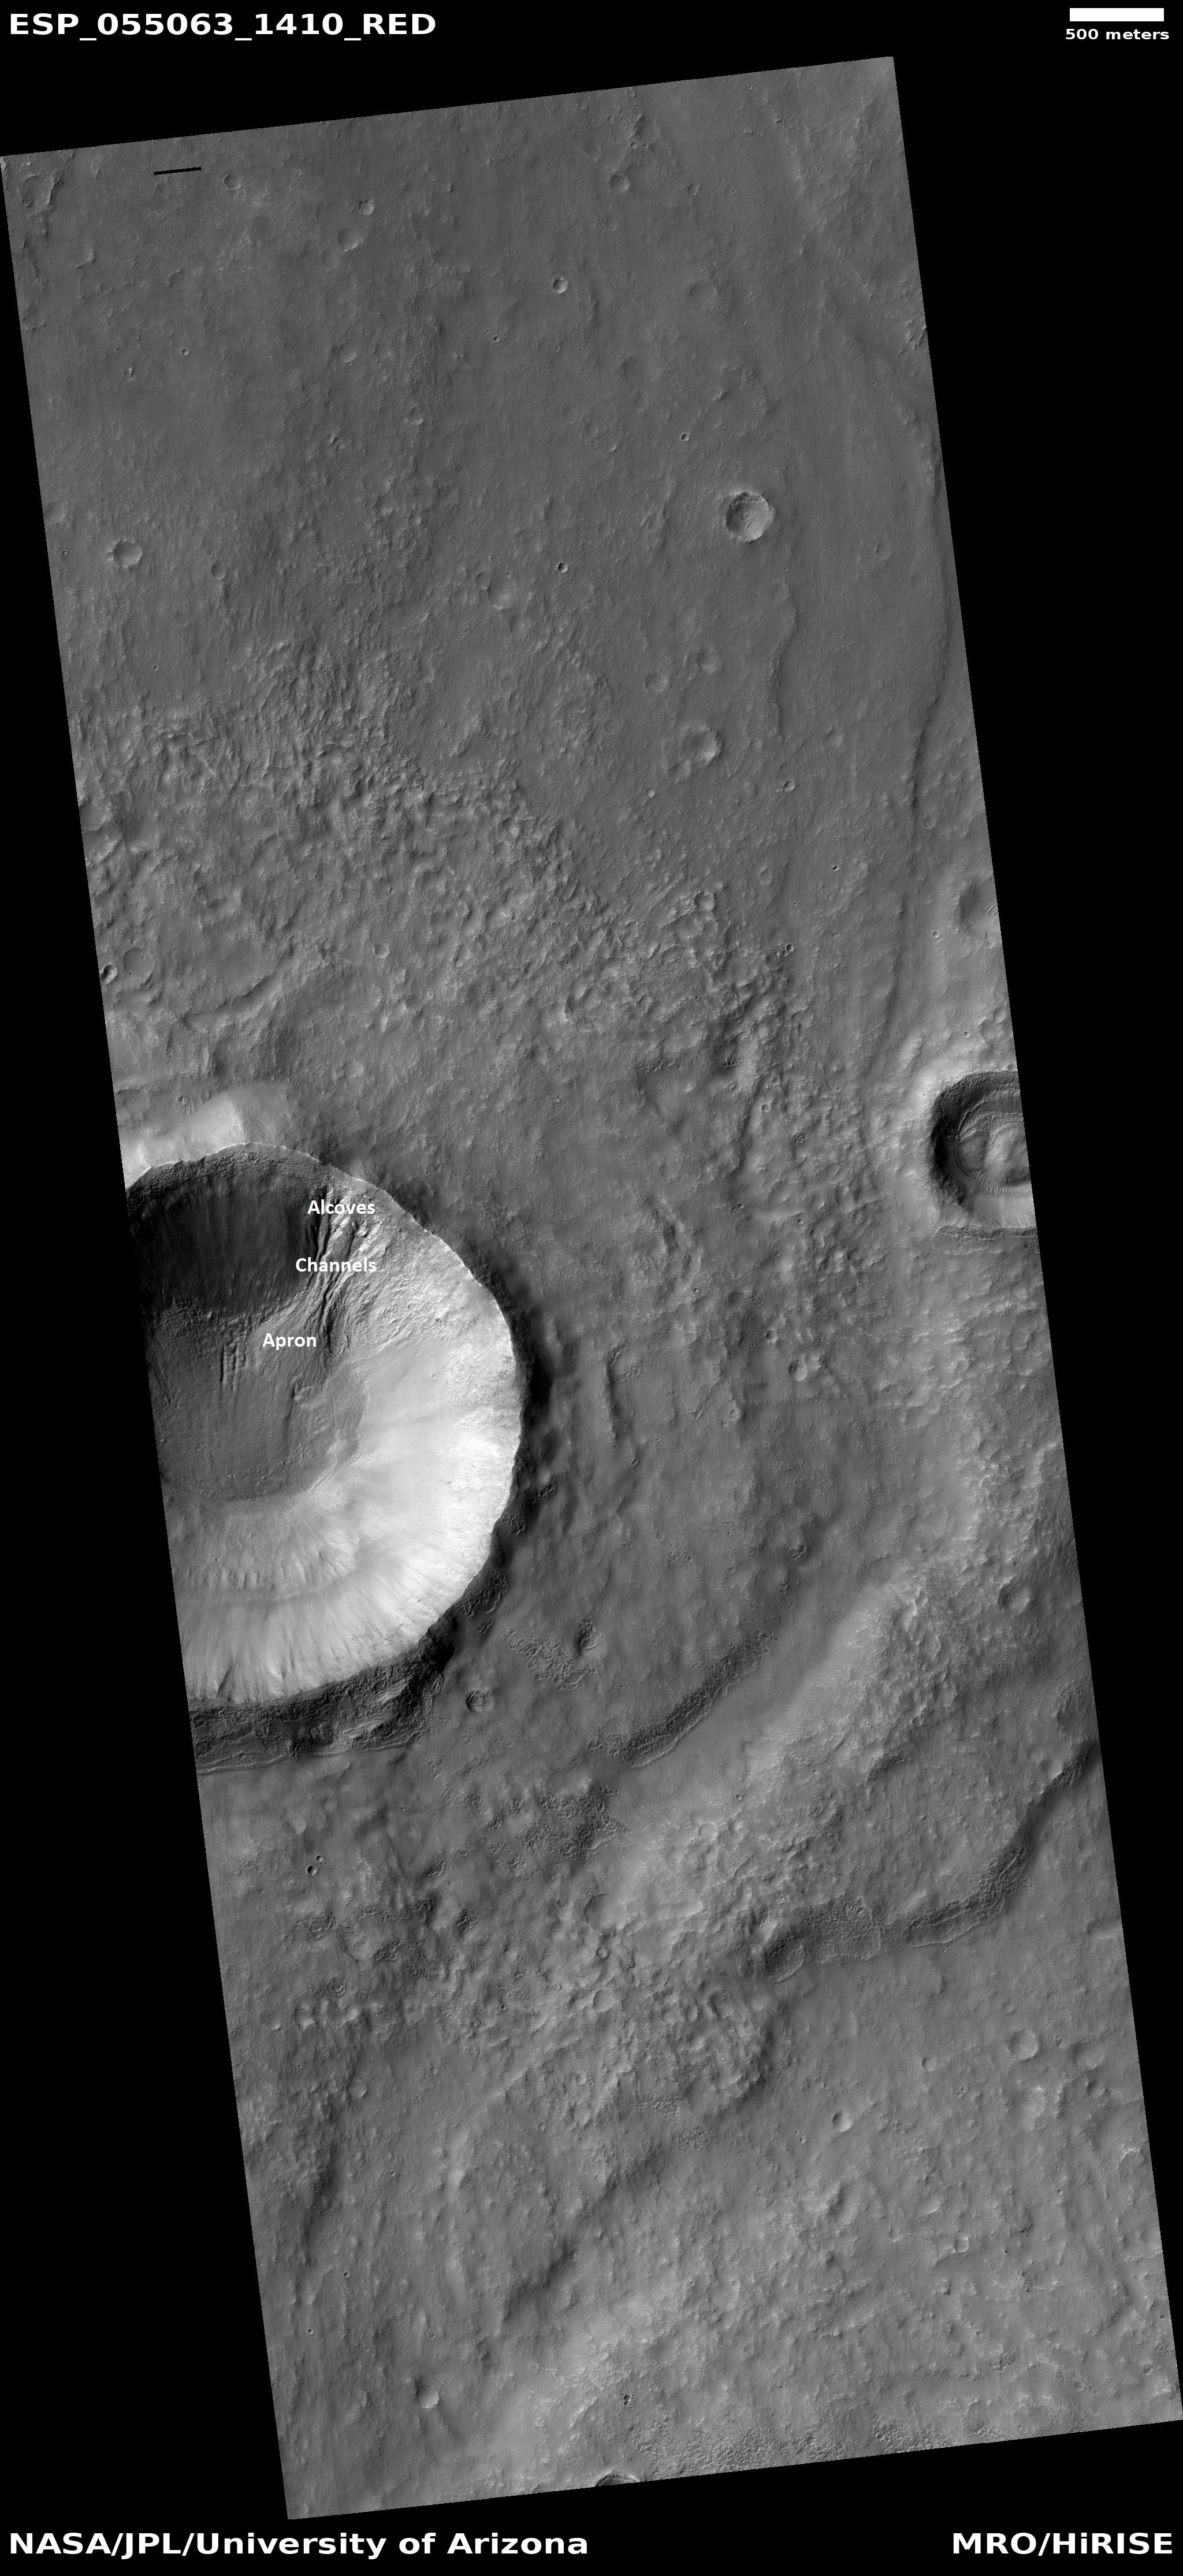 Labeled gully, as seen by HiRISE under HiWish program